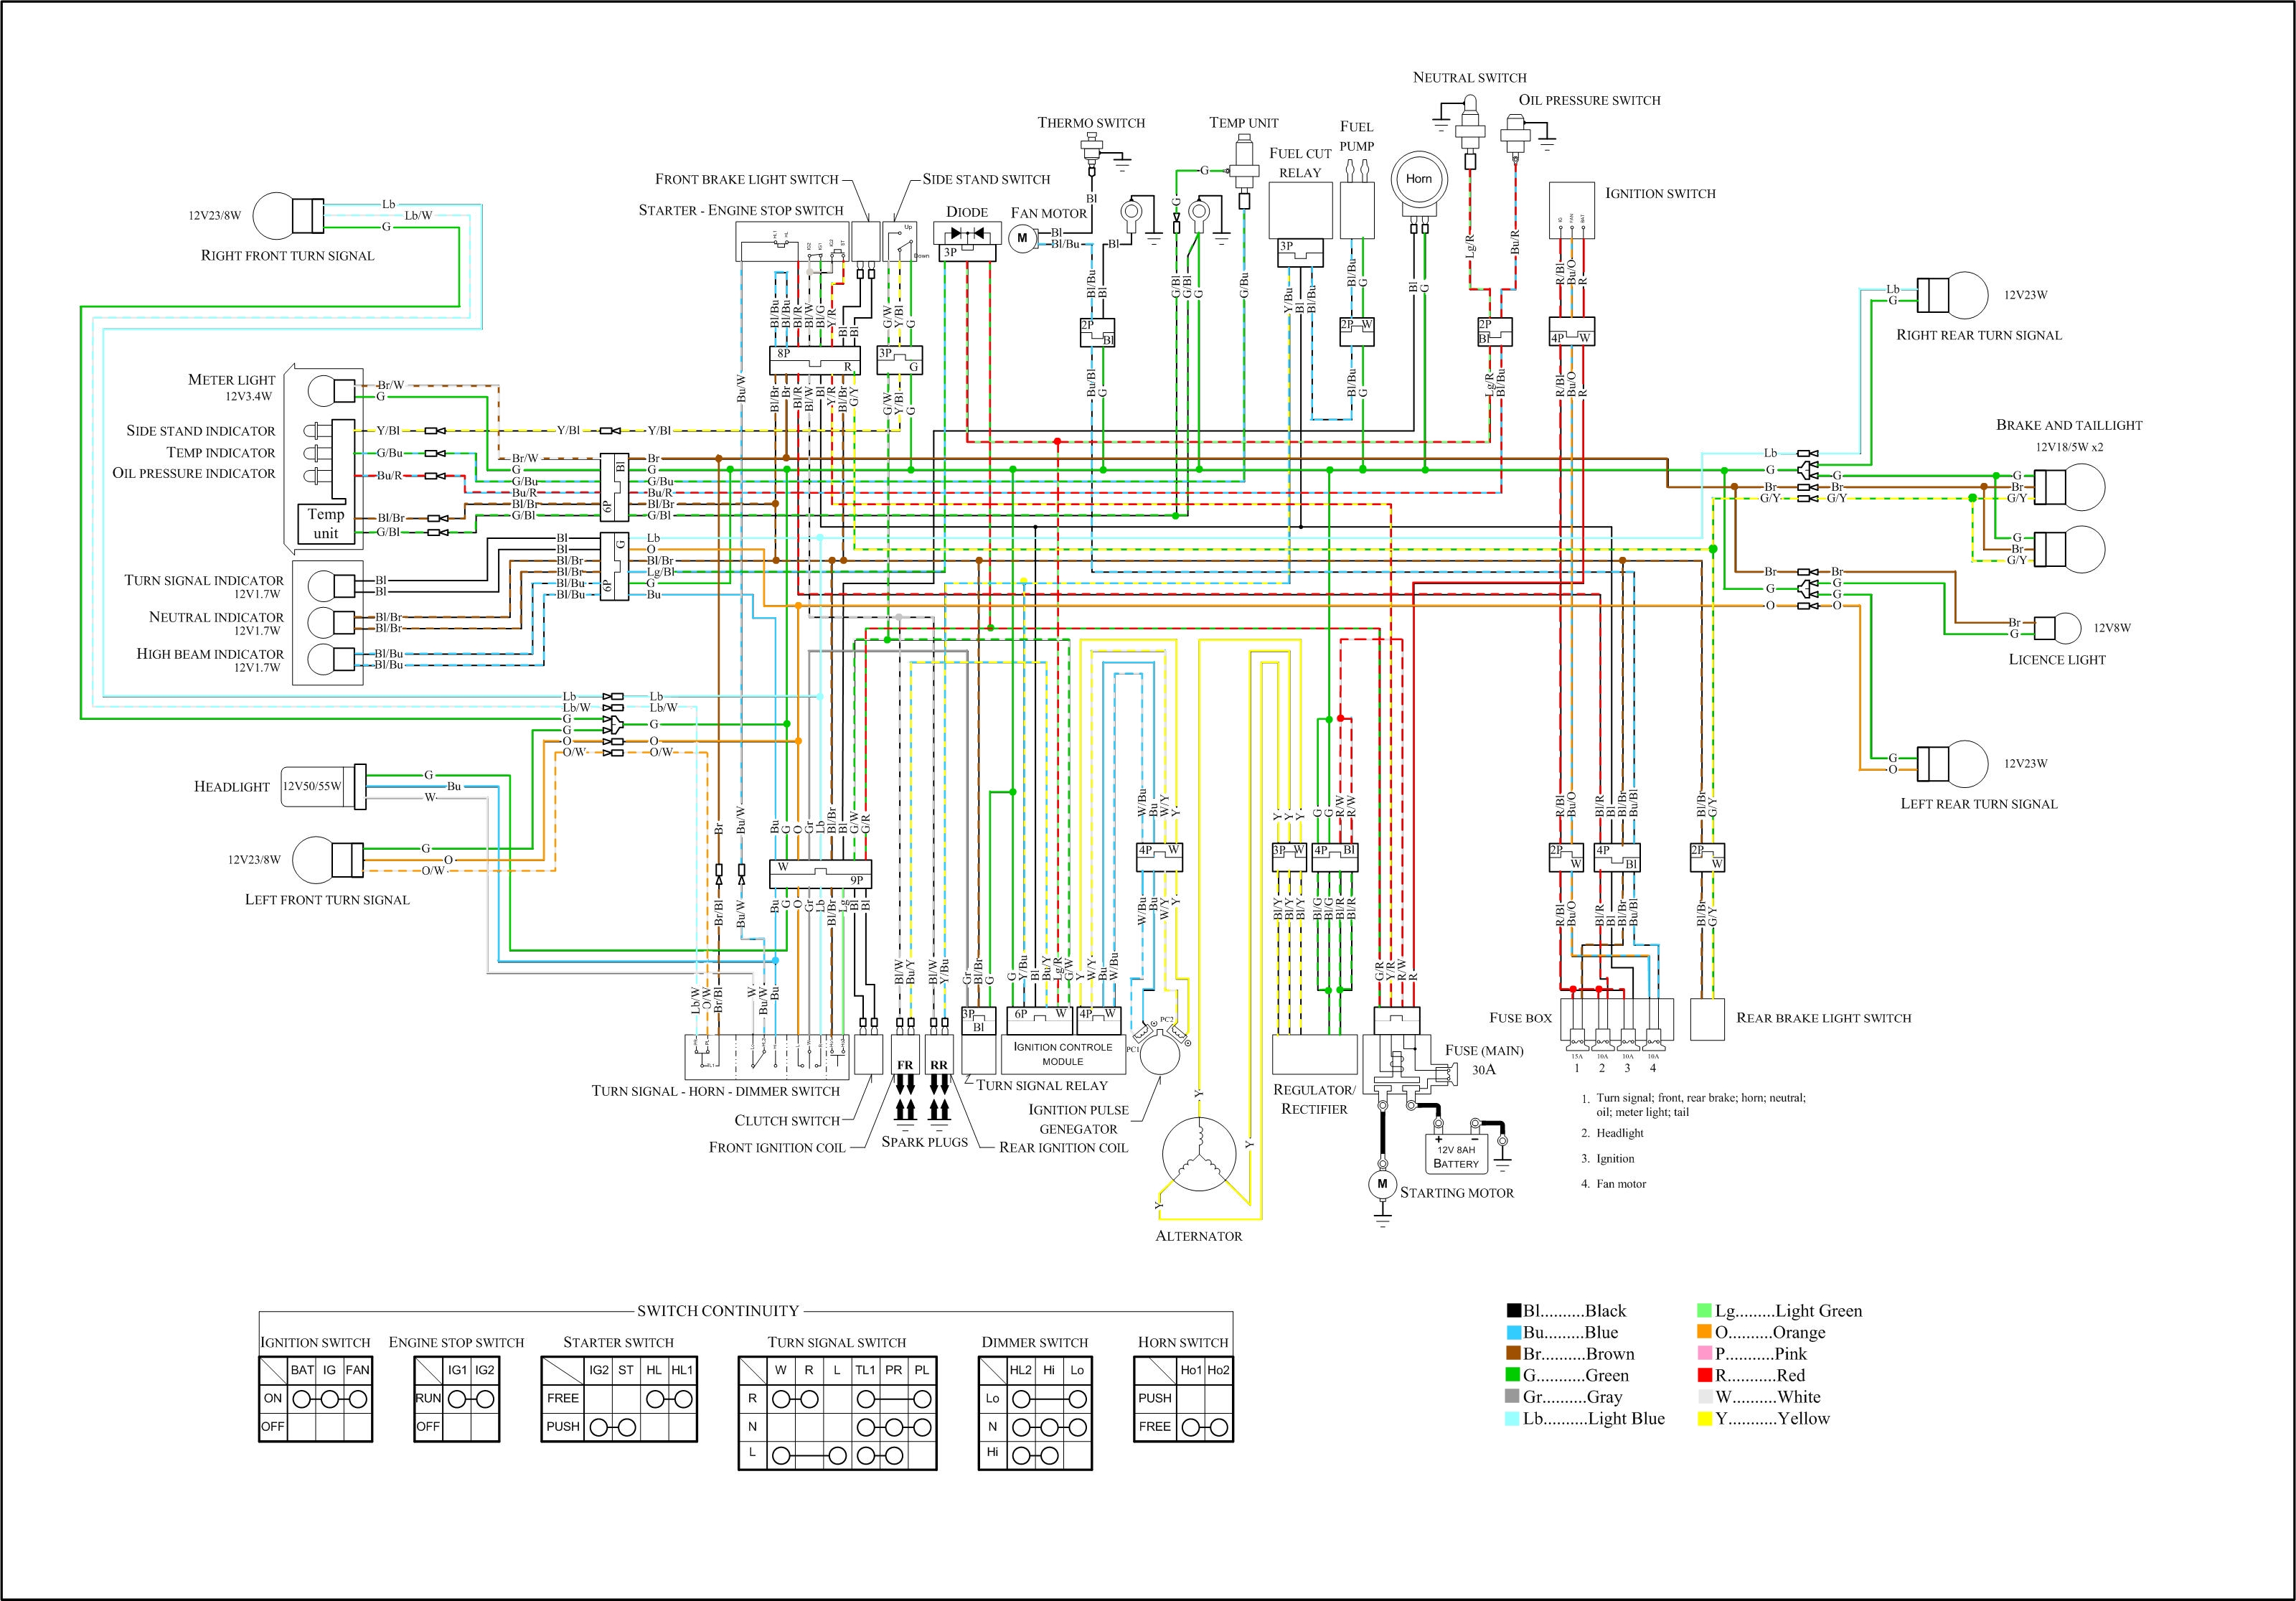 VT600wiring motorcycle wiring diagrams 1986 honda rebel 250 wiring diagram at bayanpartner.co